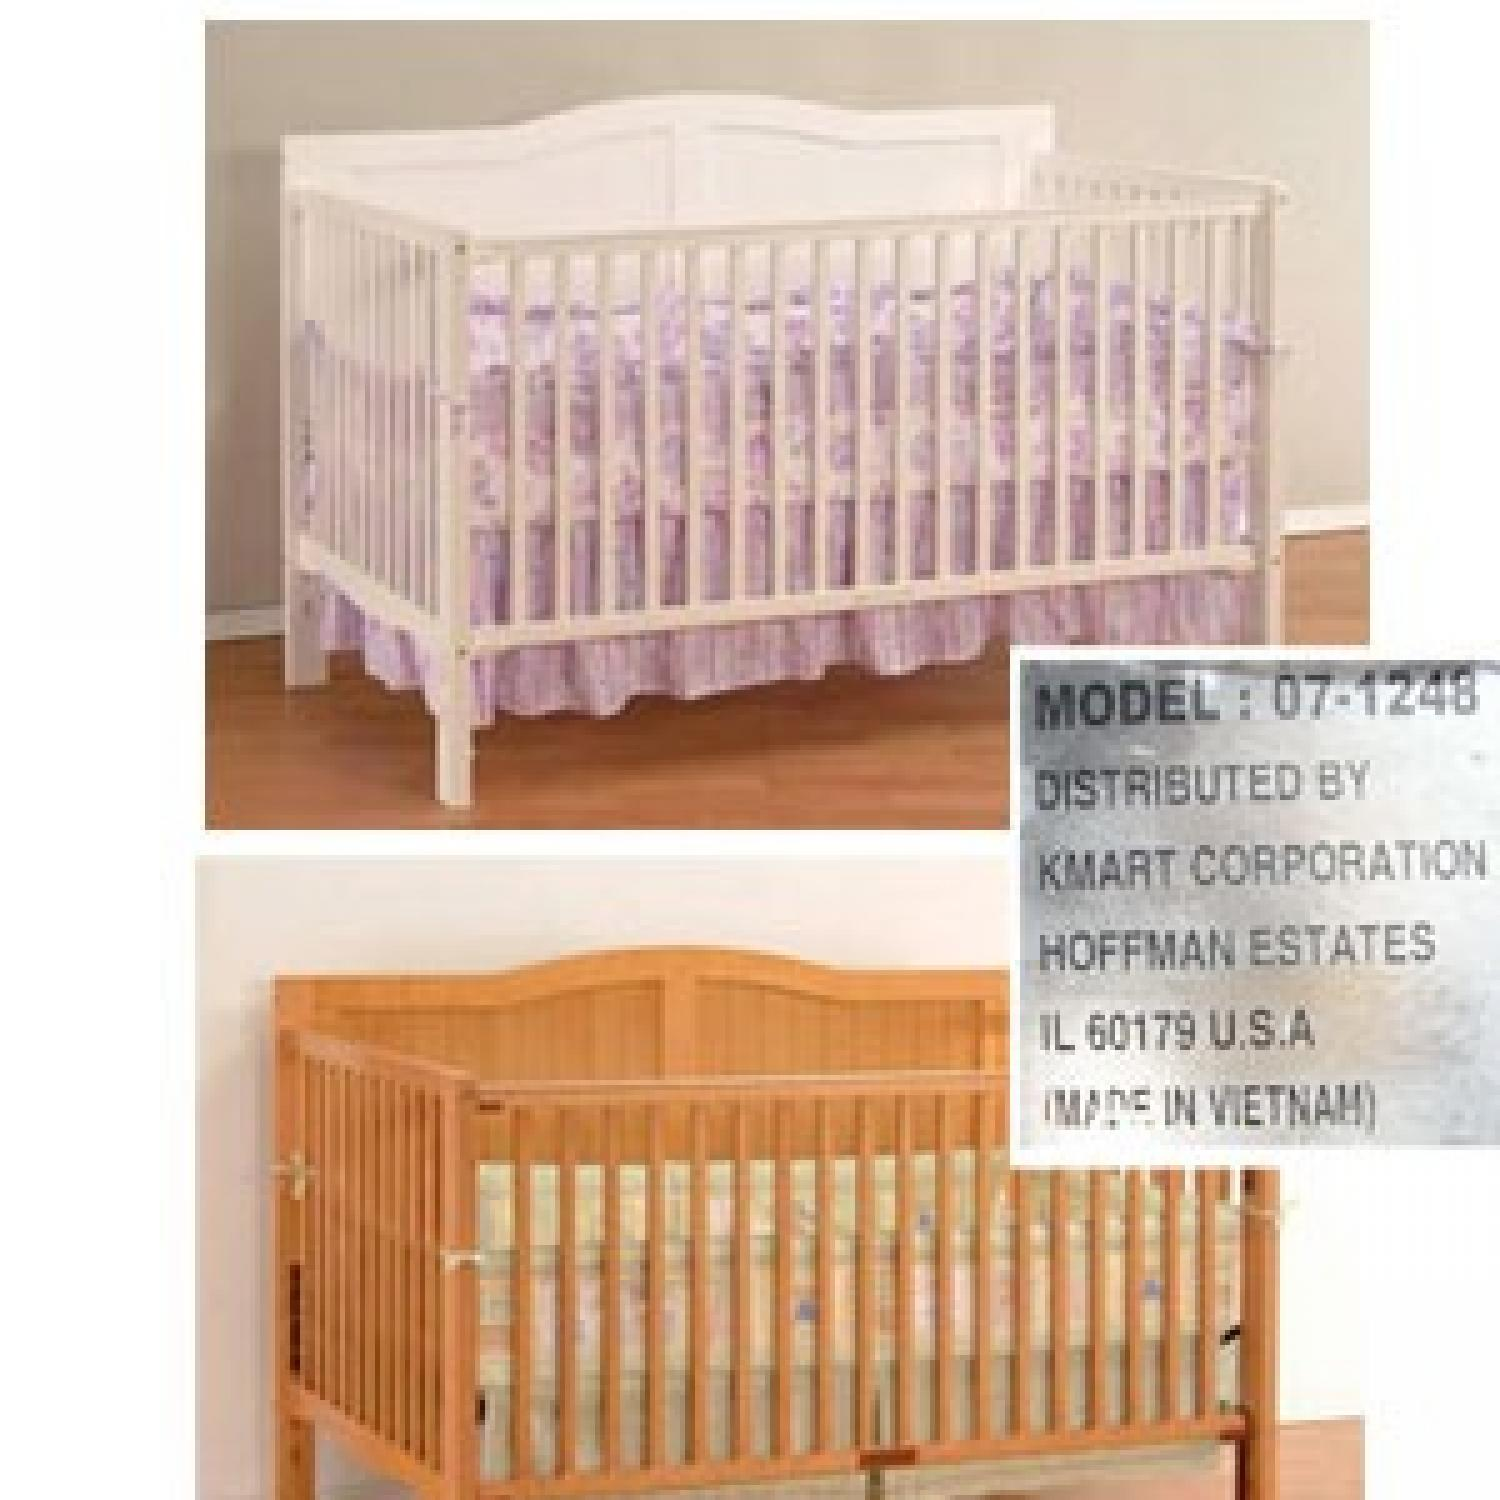 Baby Mattress Kmart 34 000 Heritage Collection Drop Side Cribs Recalled Parenting